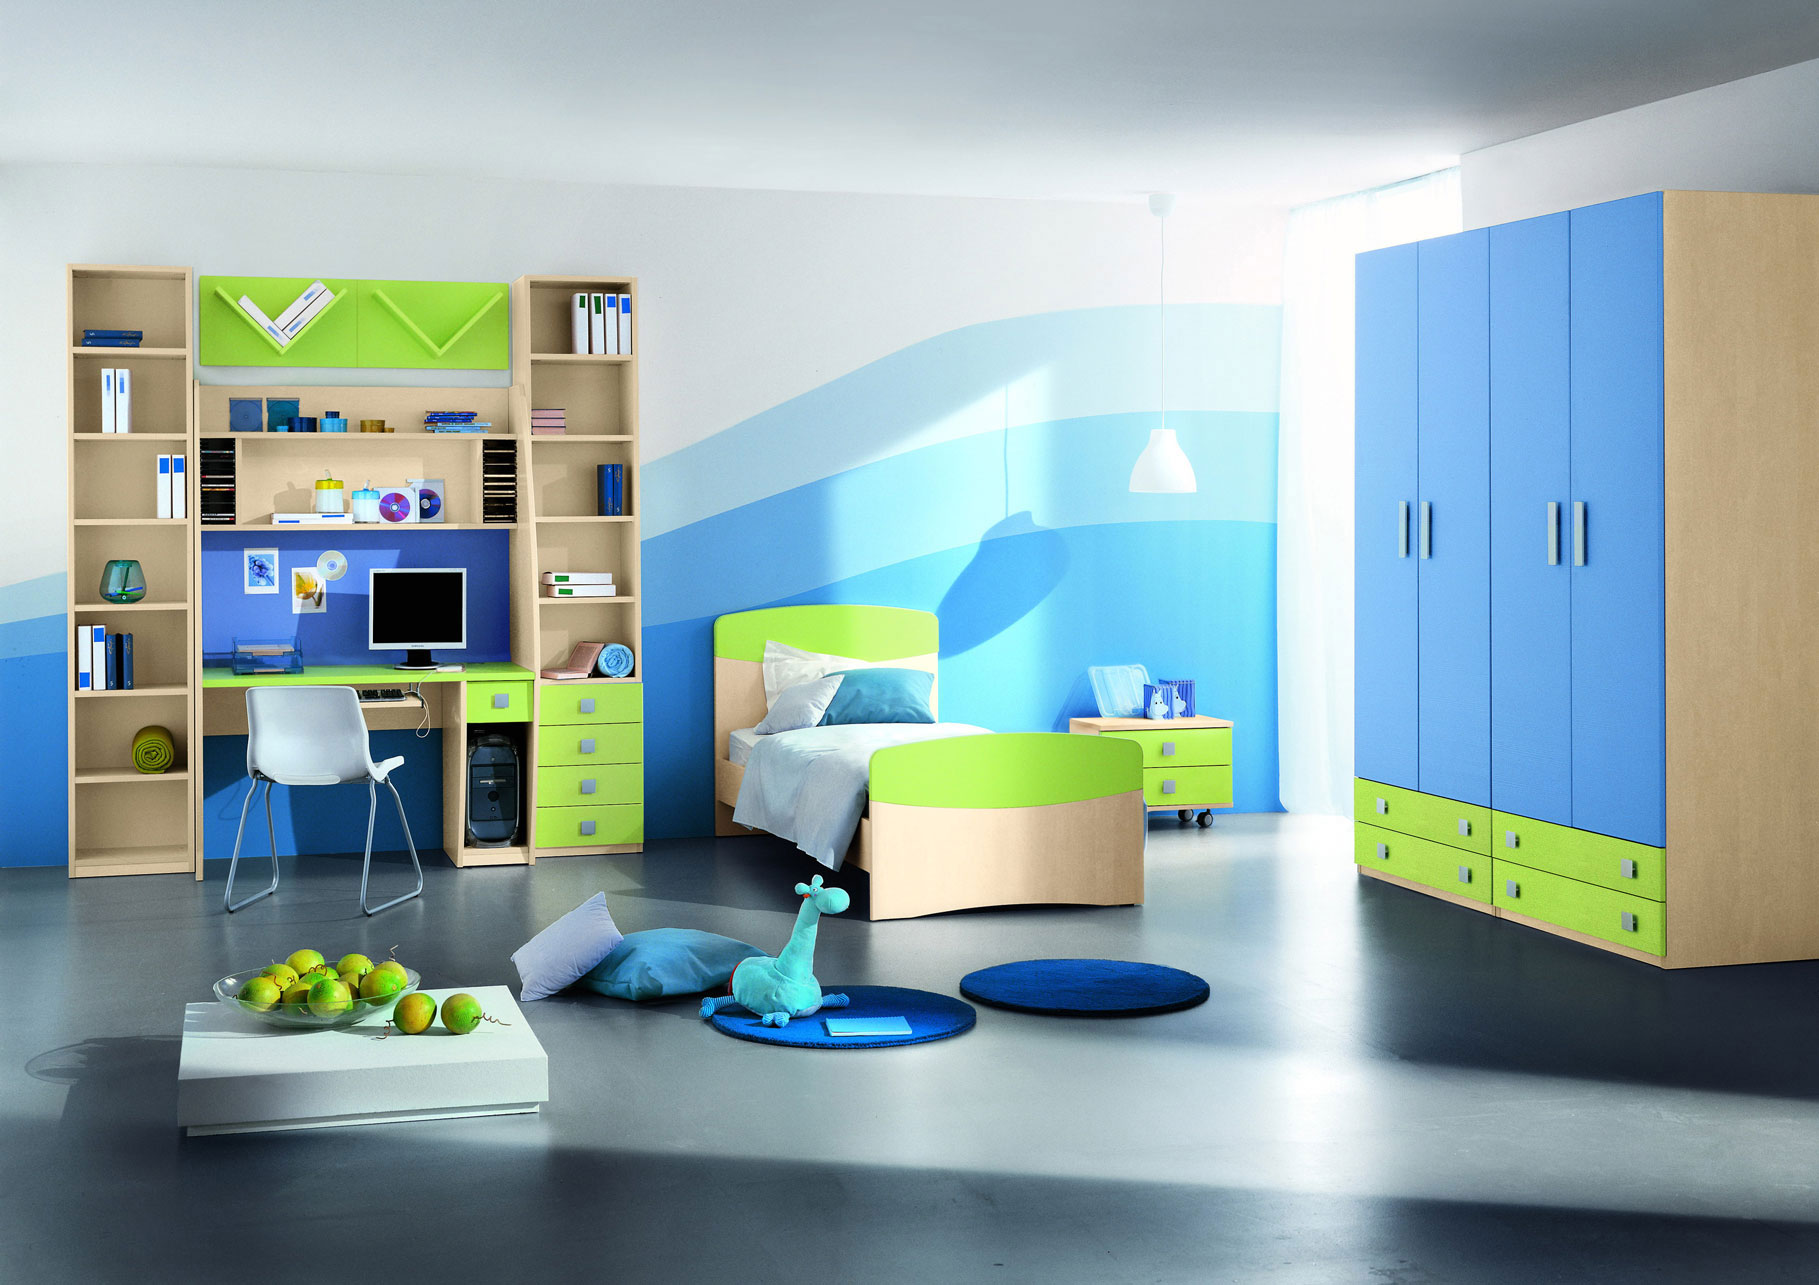 Greatest Blue and Green Kids Room Ideas 1819 x 1285 · 287 kB · jpeg